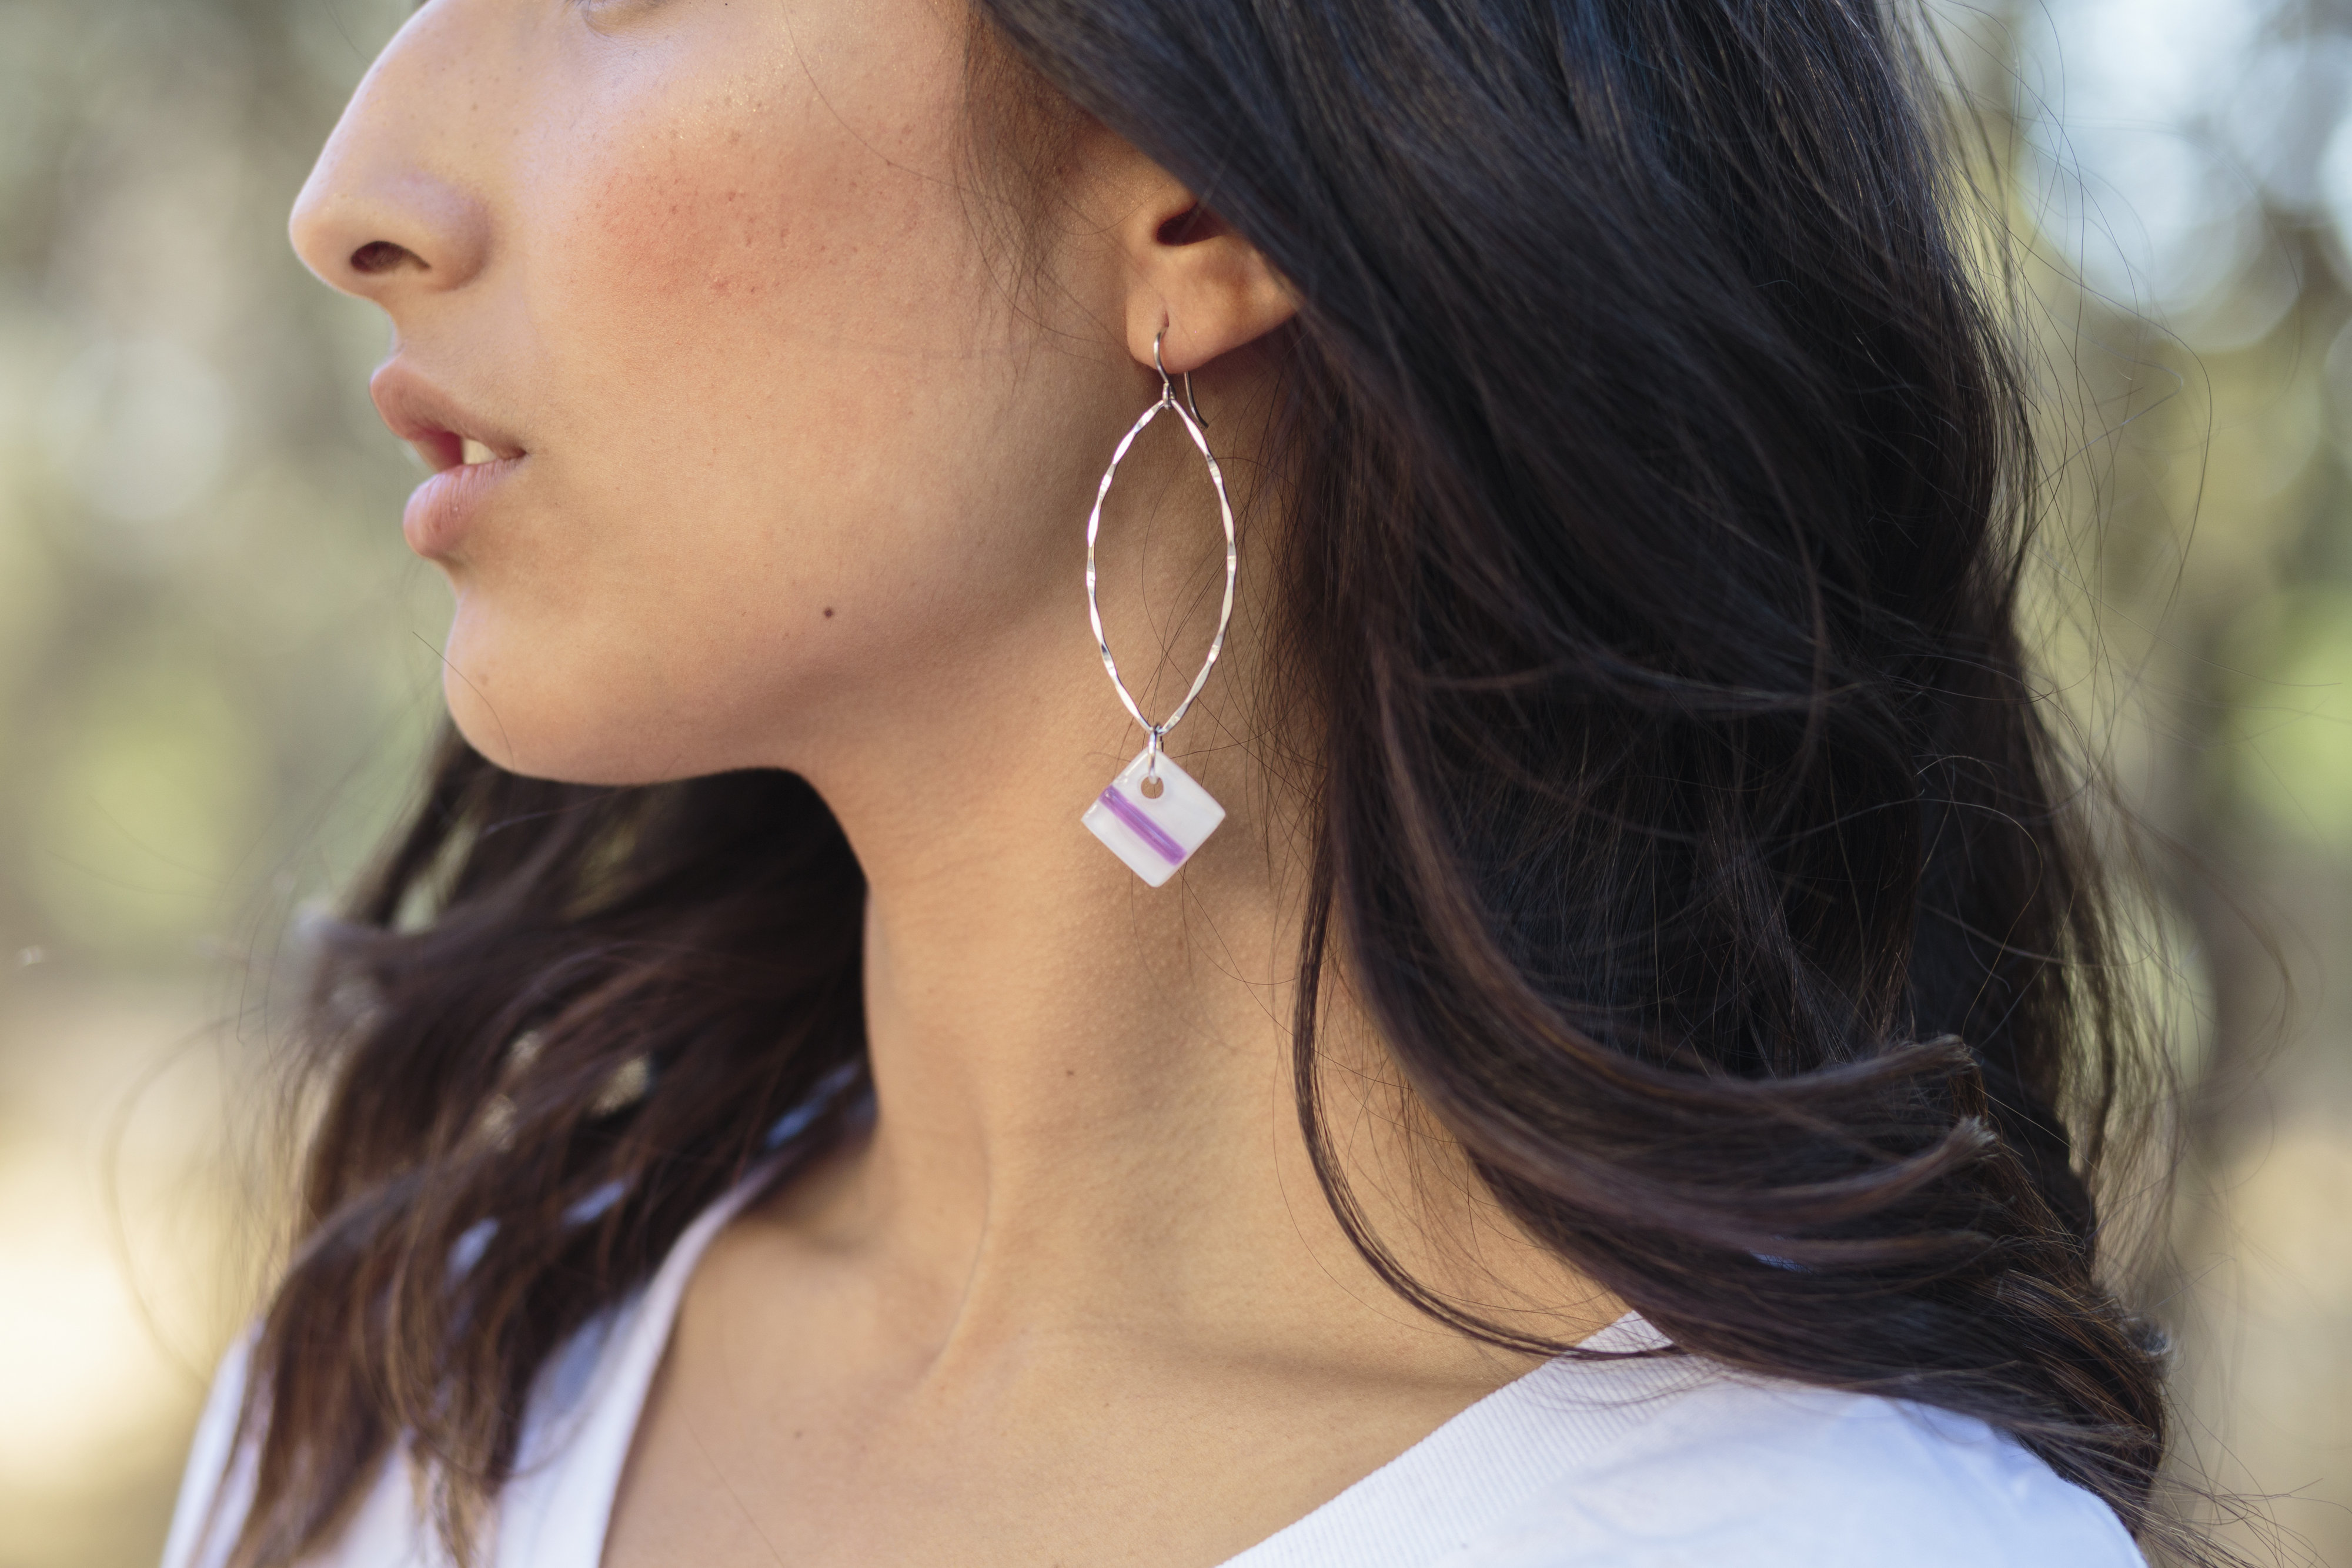 View More: http://mchambard.pass.us/grayc-glass-earrings